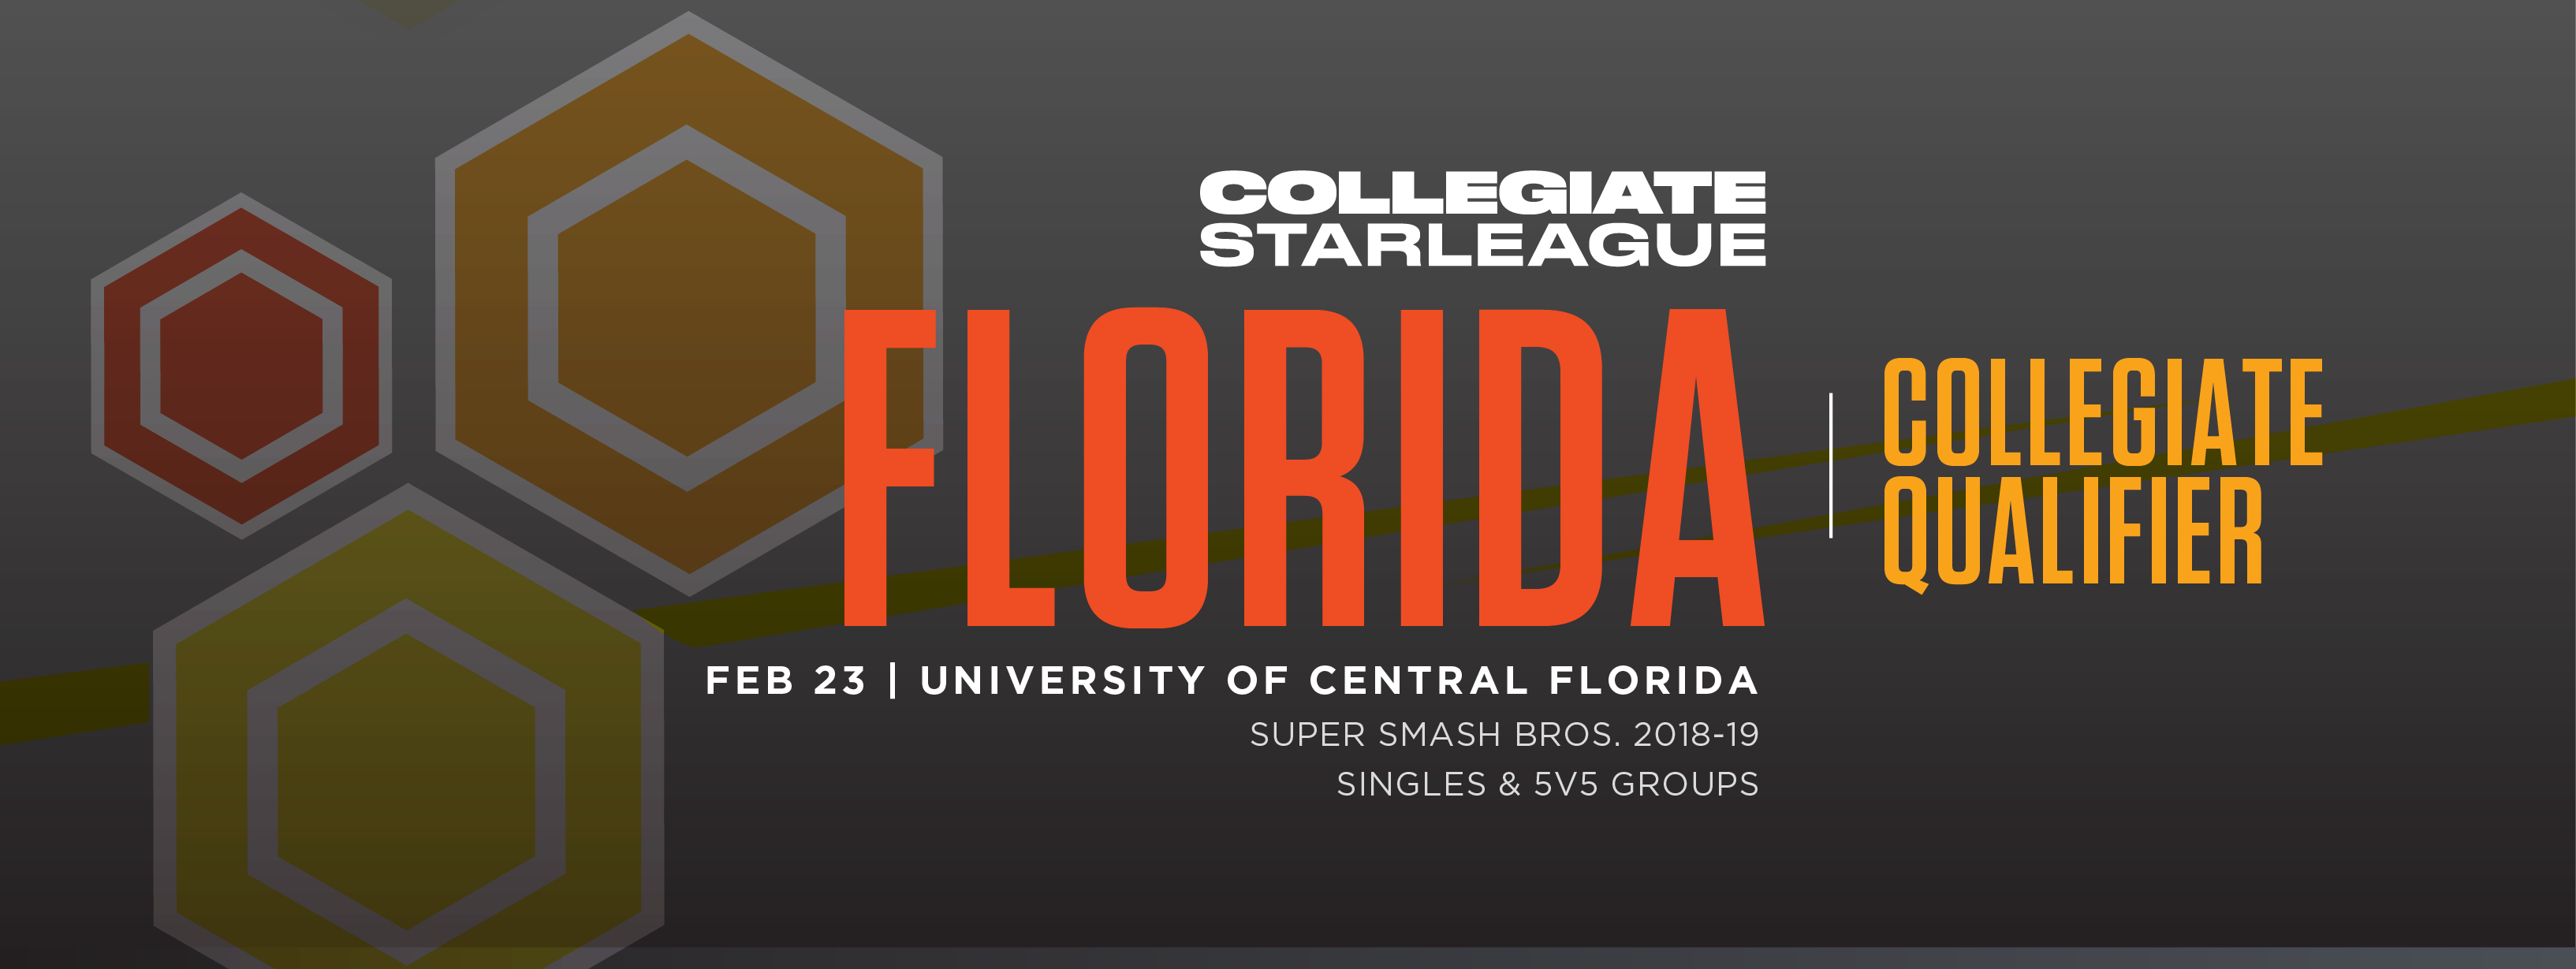 Smash local qualifier fb event image 2018 19 07